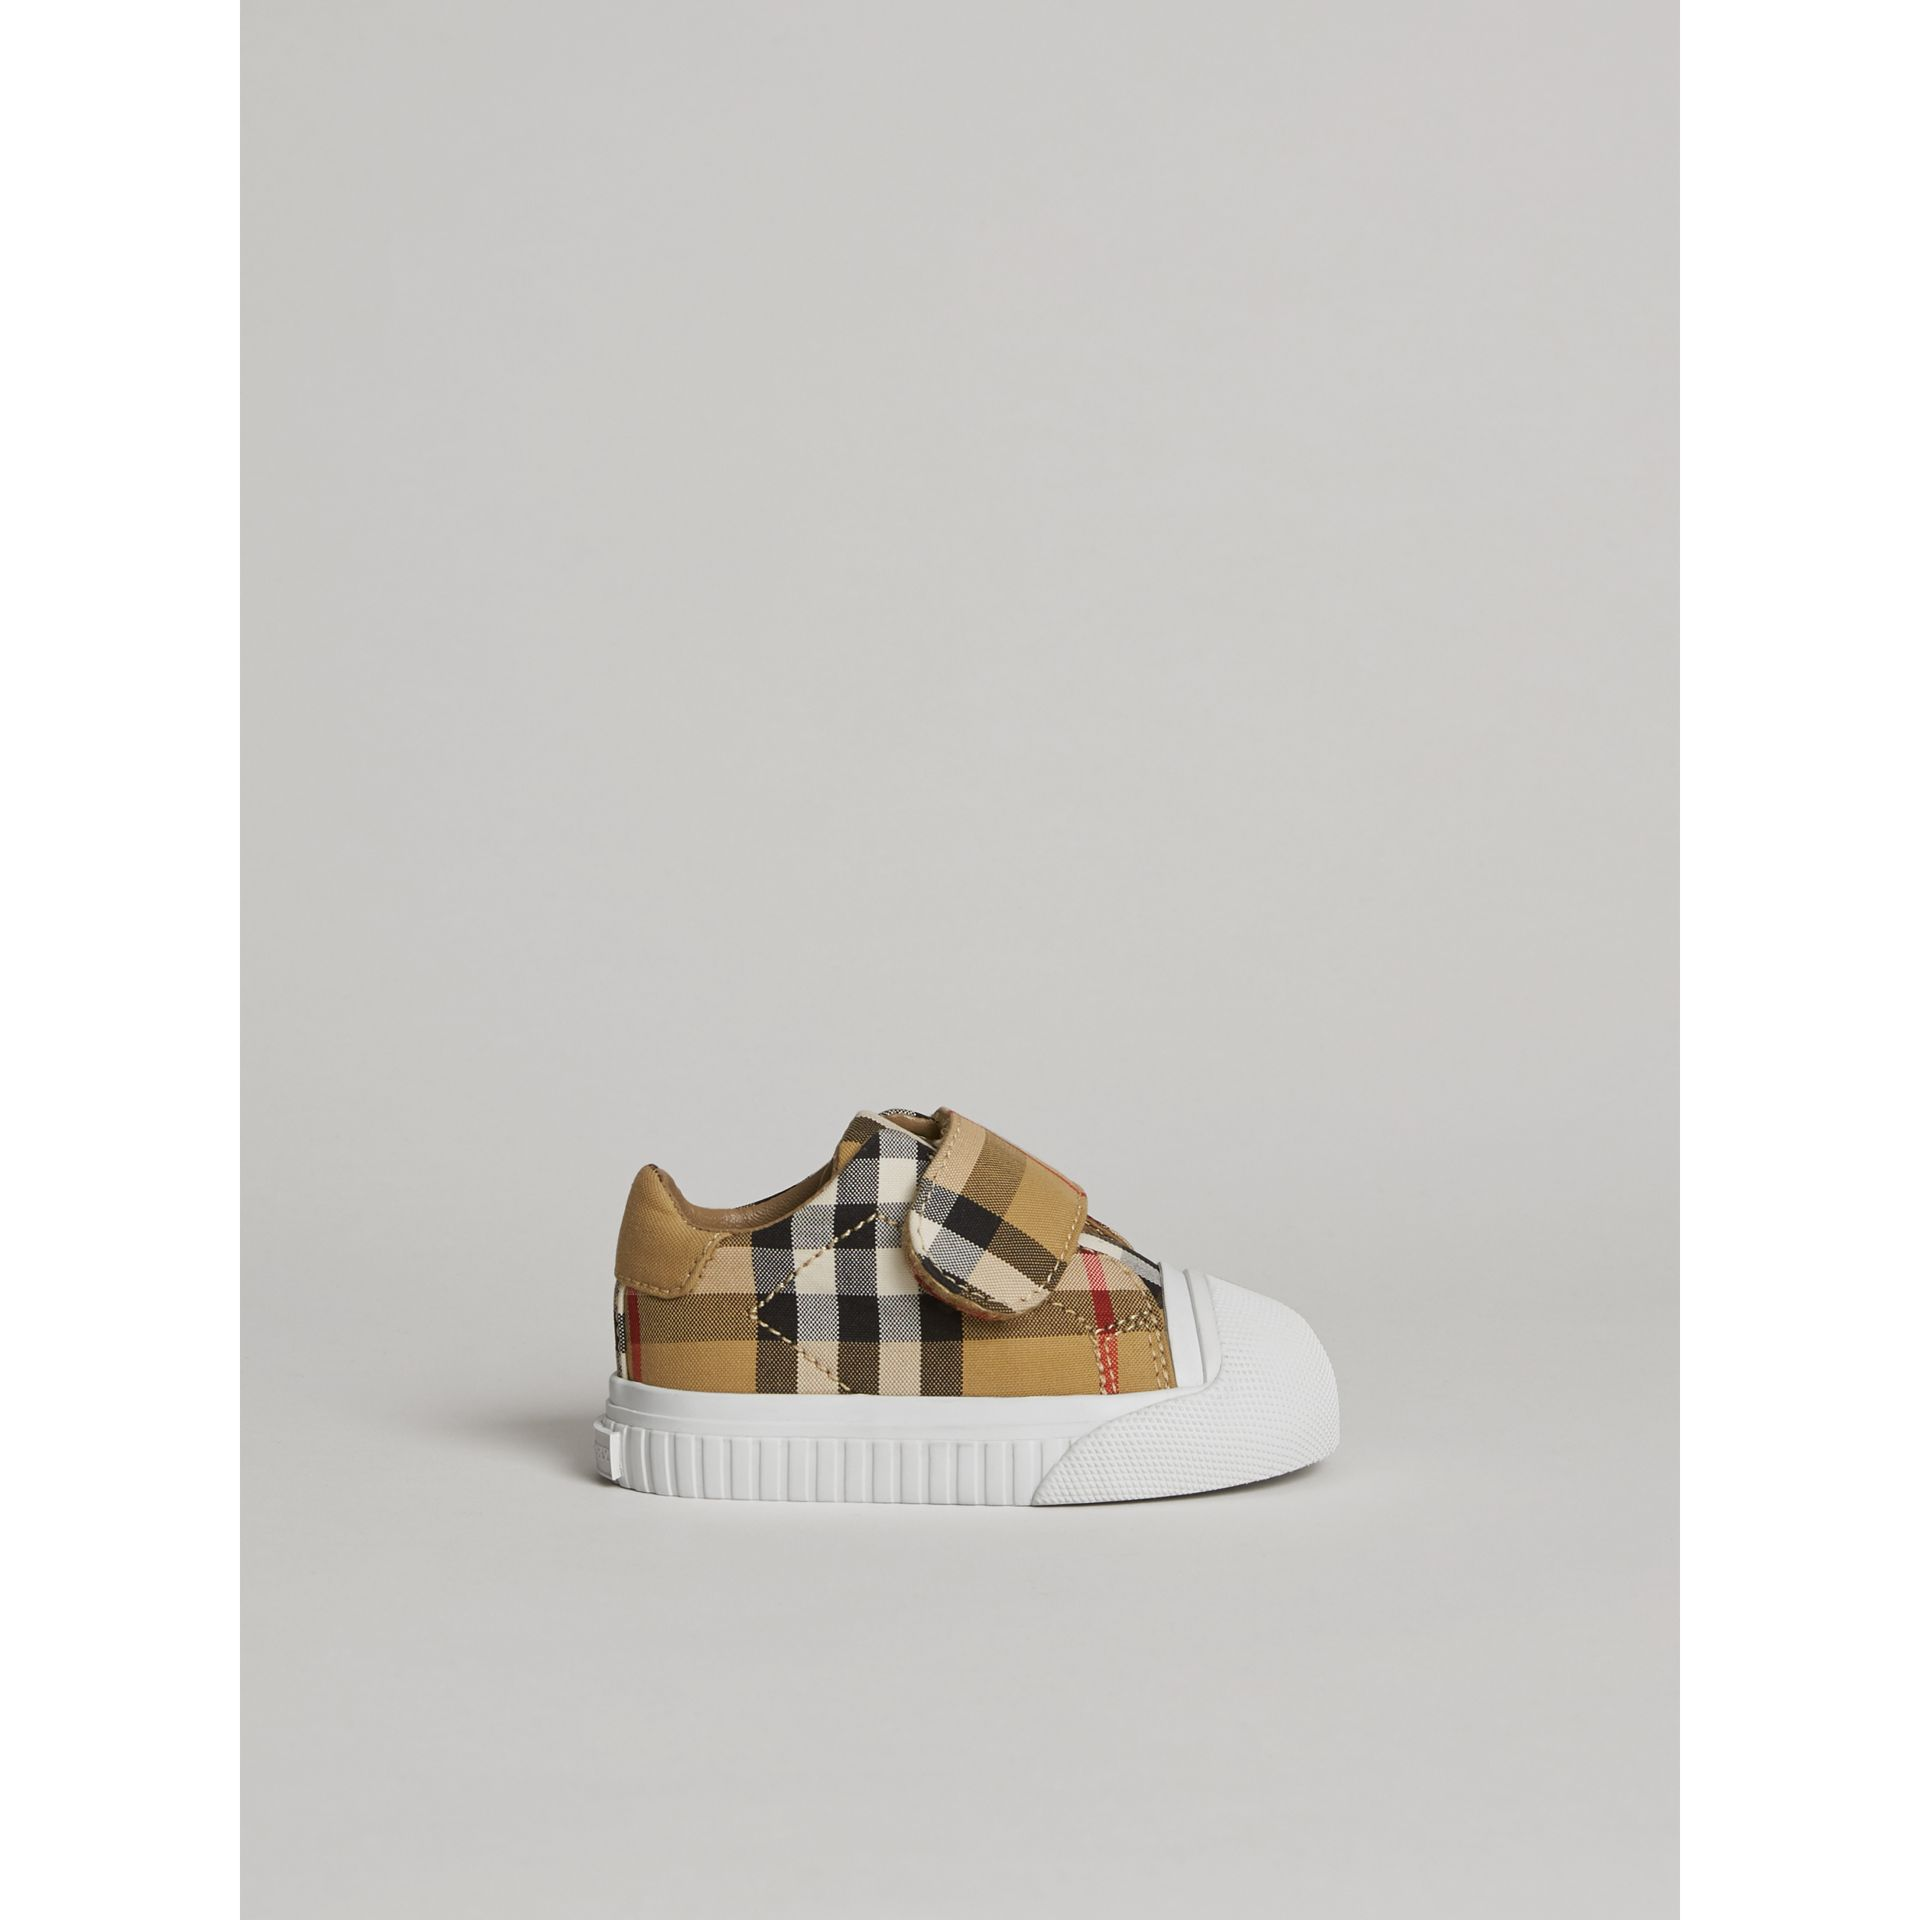 Sneakers en cuir à motif Vintage check (Jaune Antique/blanc Optique) - Enfant | Burberry - photo de la galerie 3